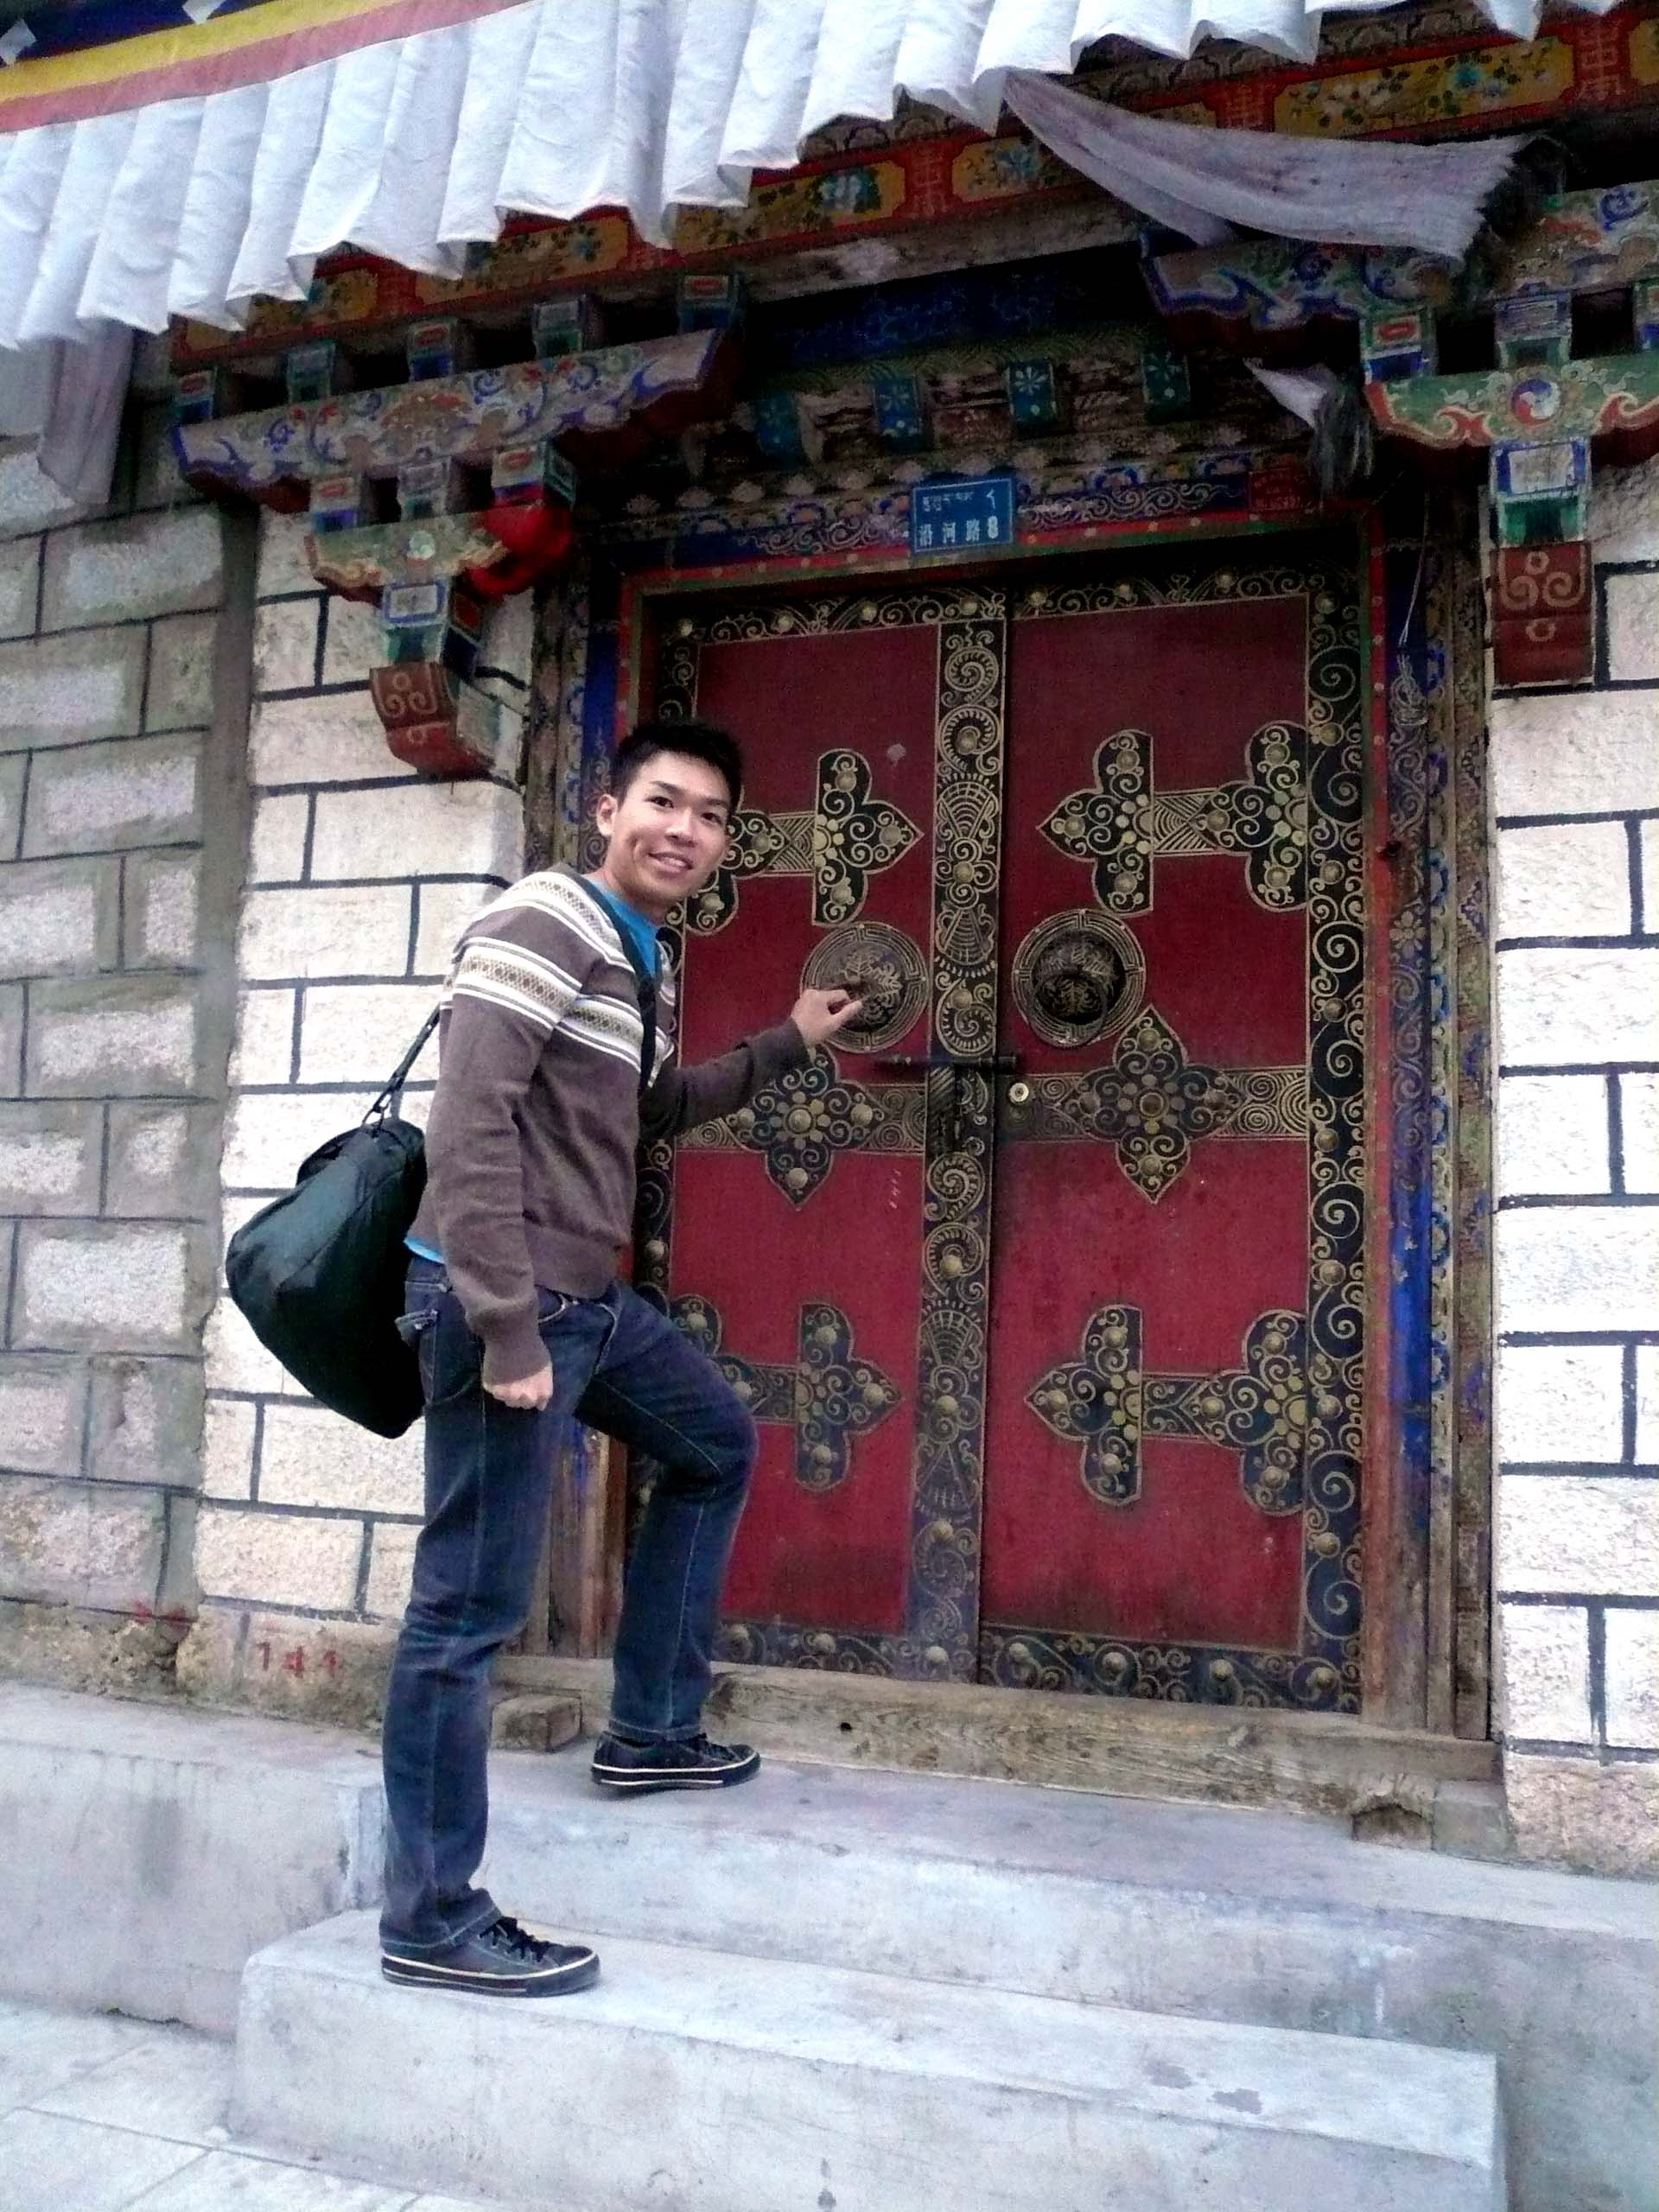 A traditional Tibetian domestic door